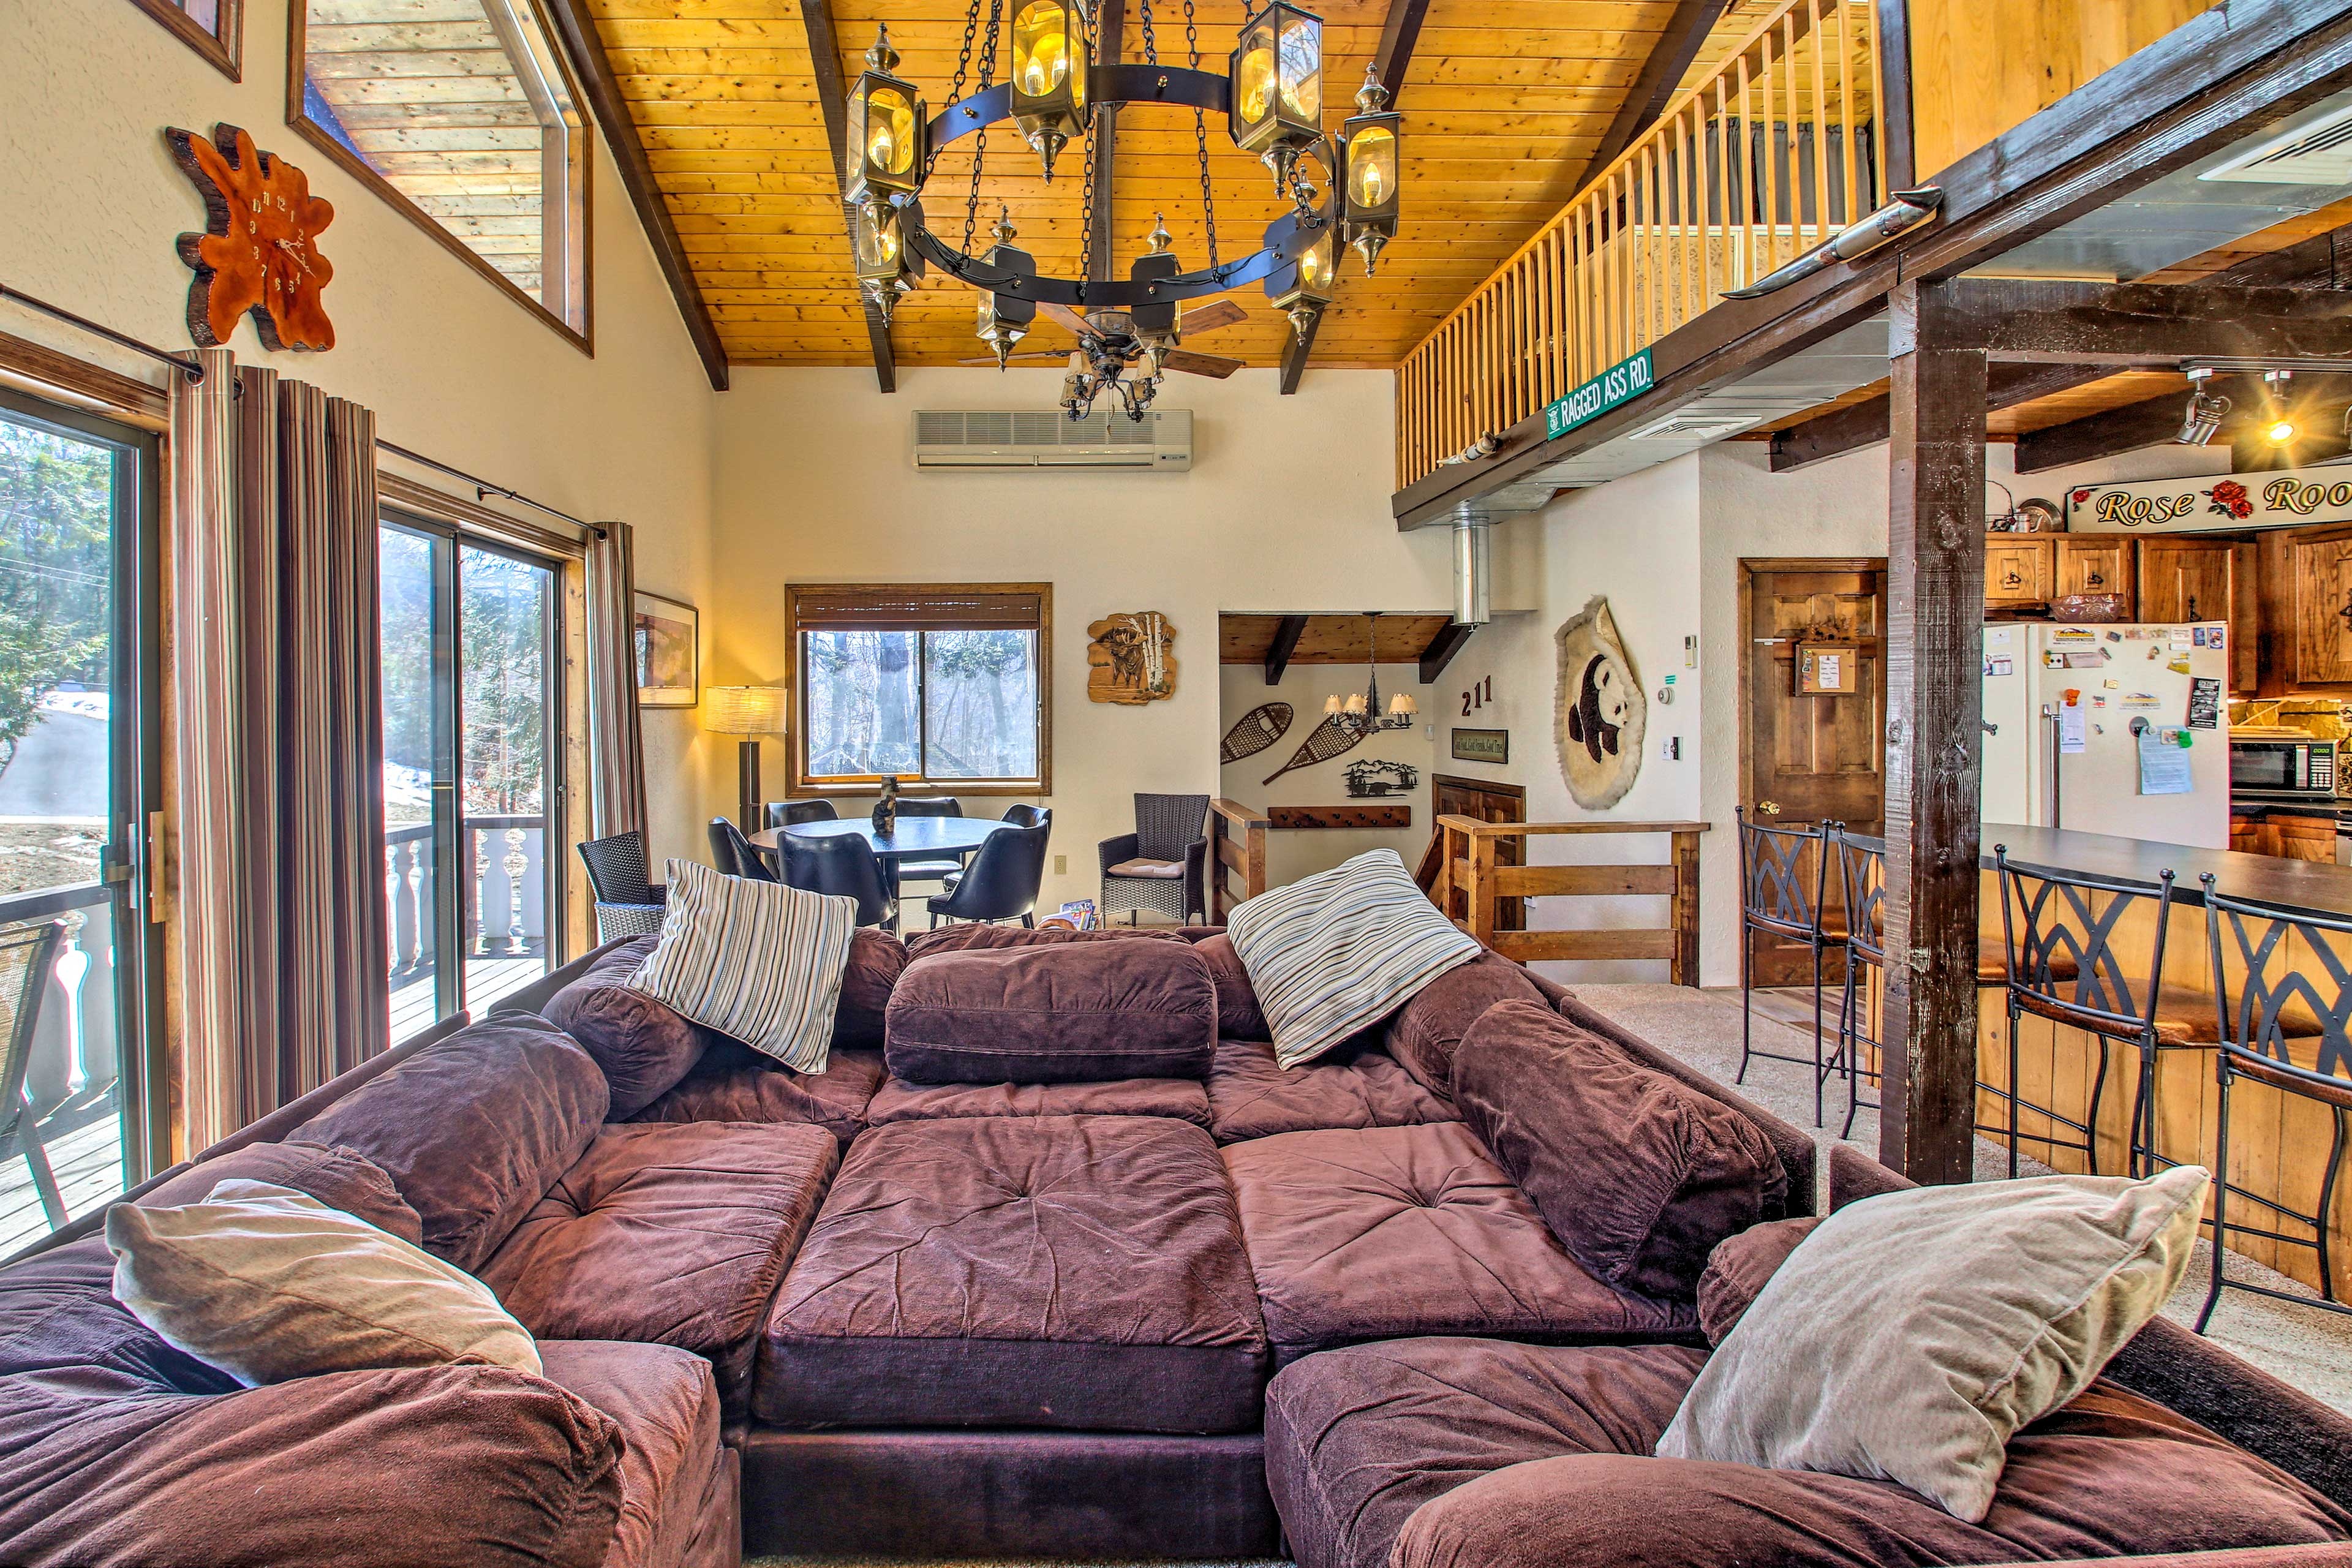 The pit couch is the perfect place to cozy up after a day on the slopes.